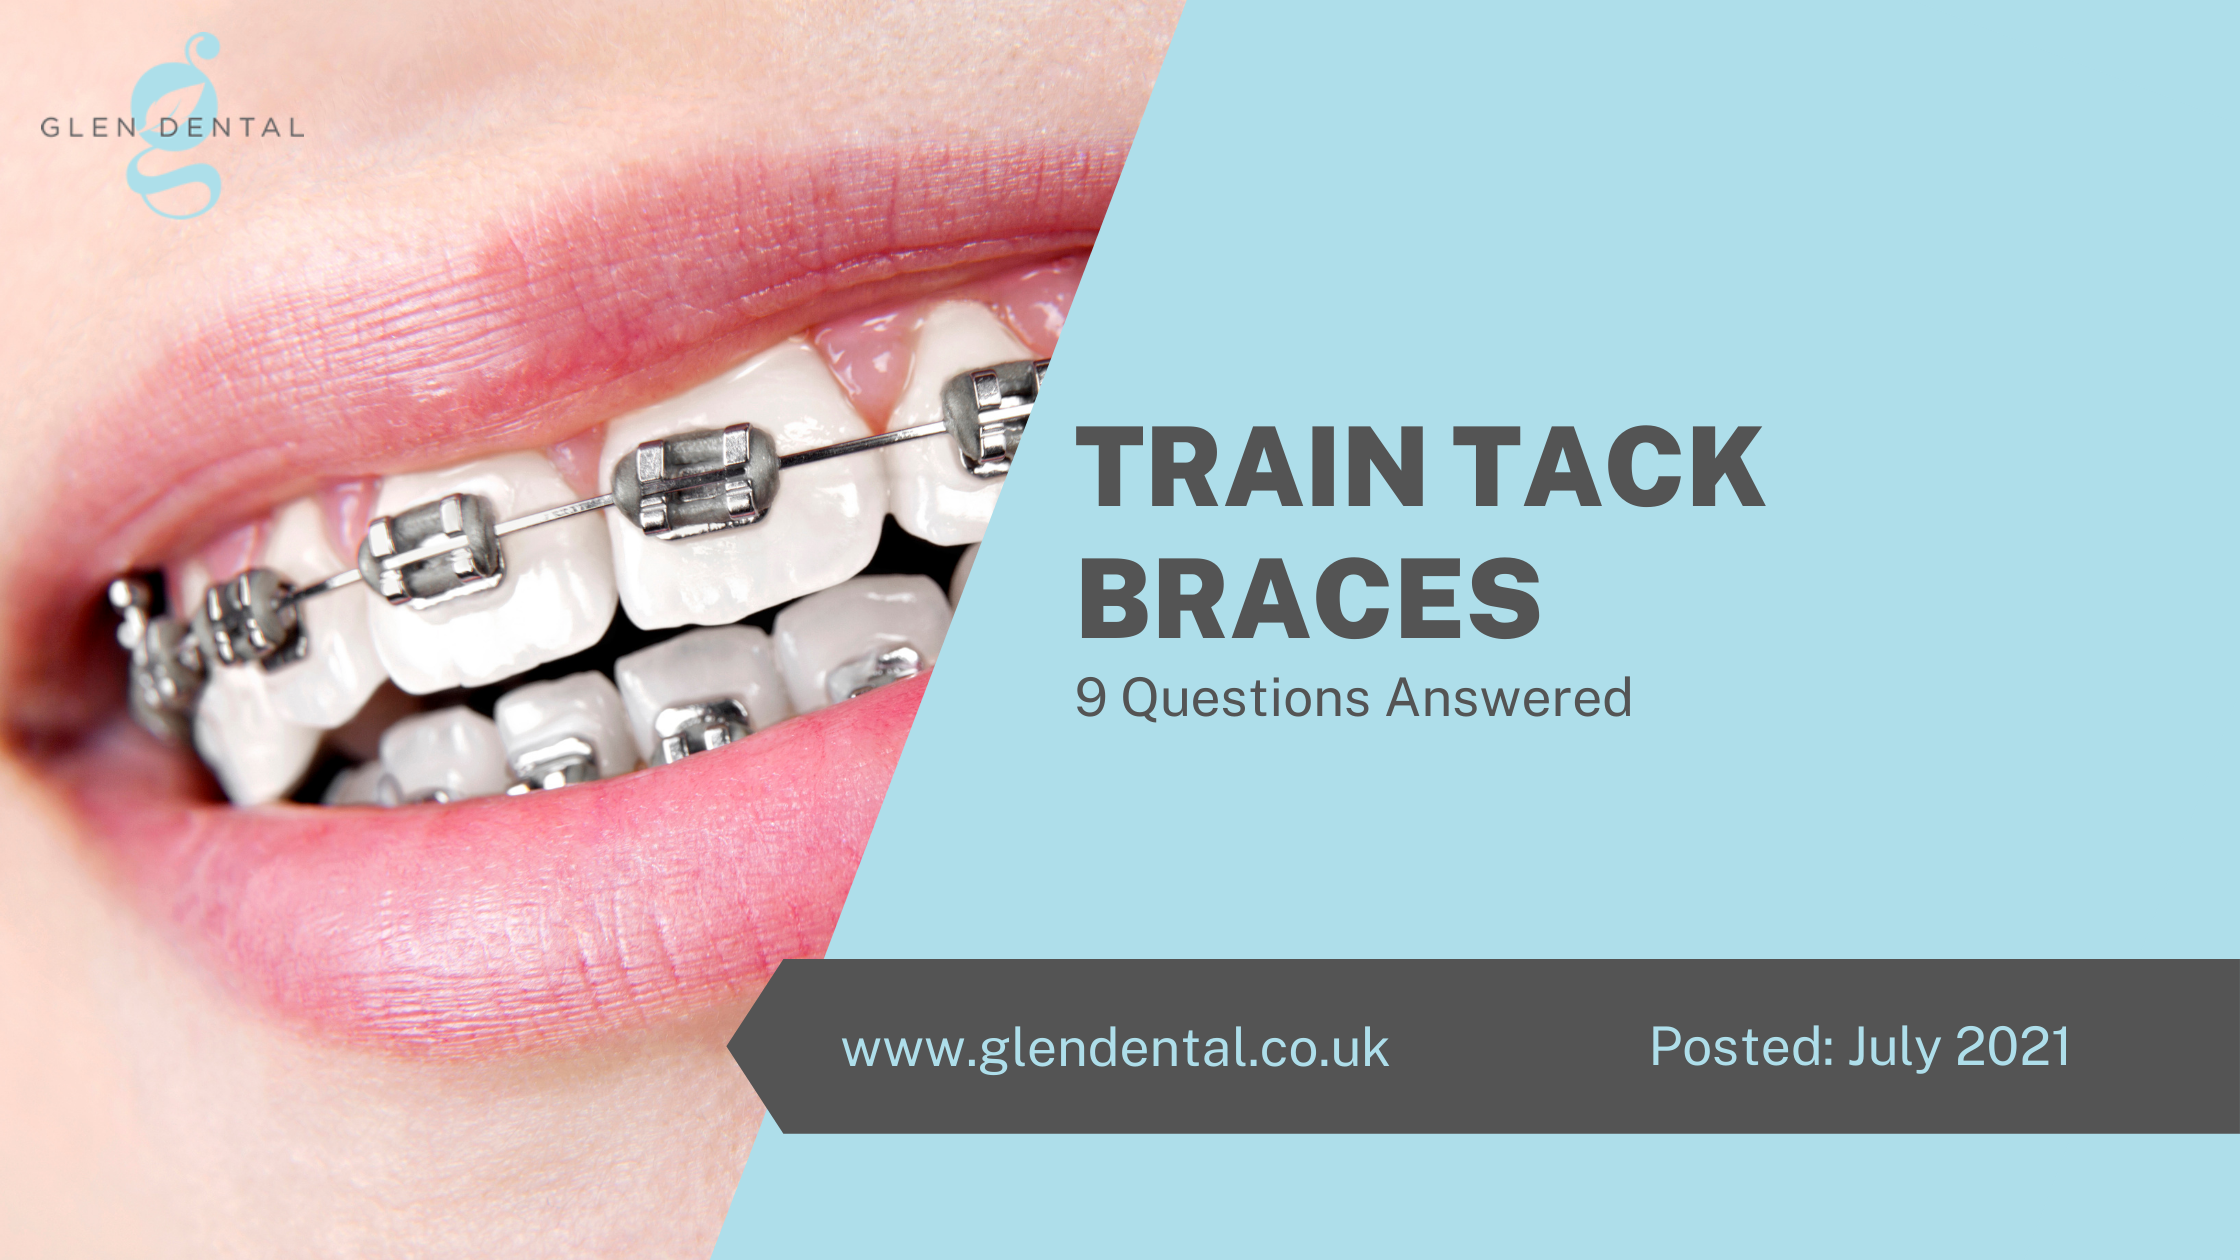 Train Tack Braces - 9 Questions Answered